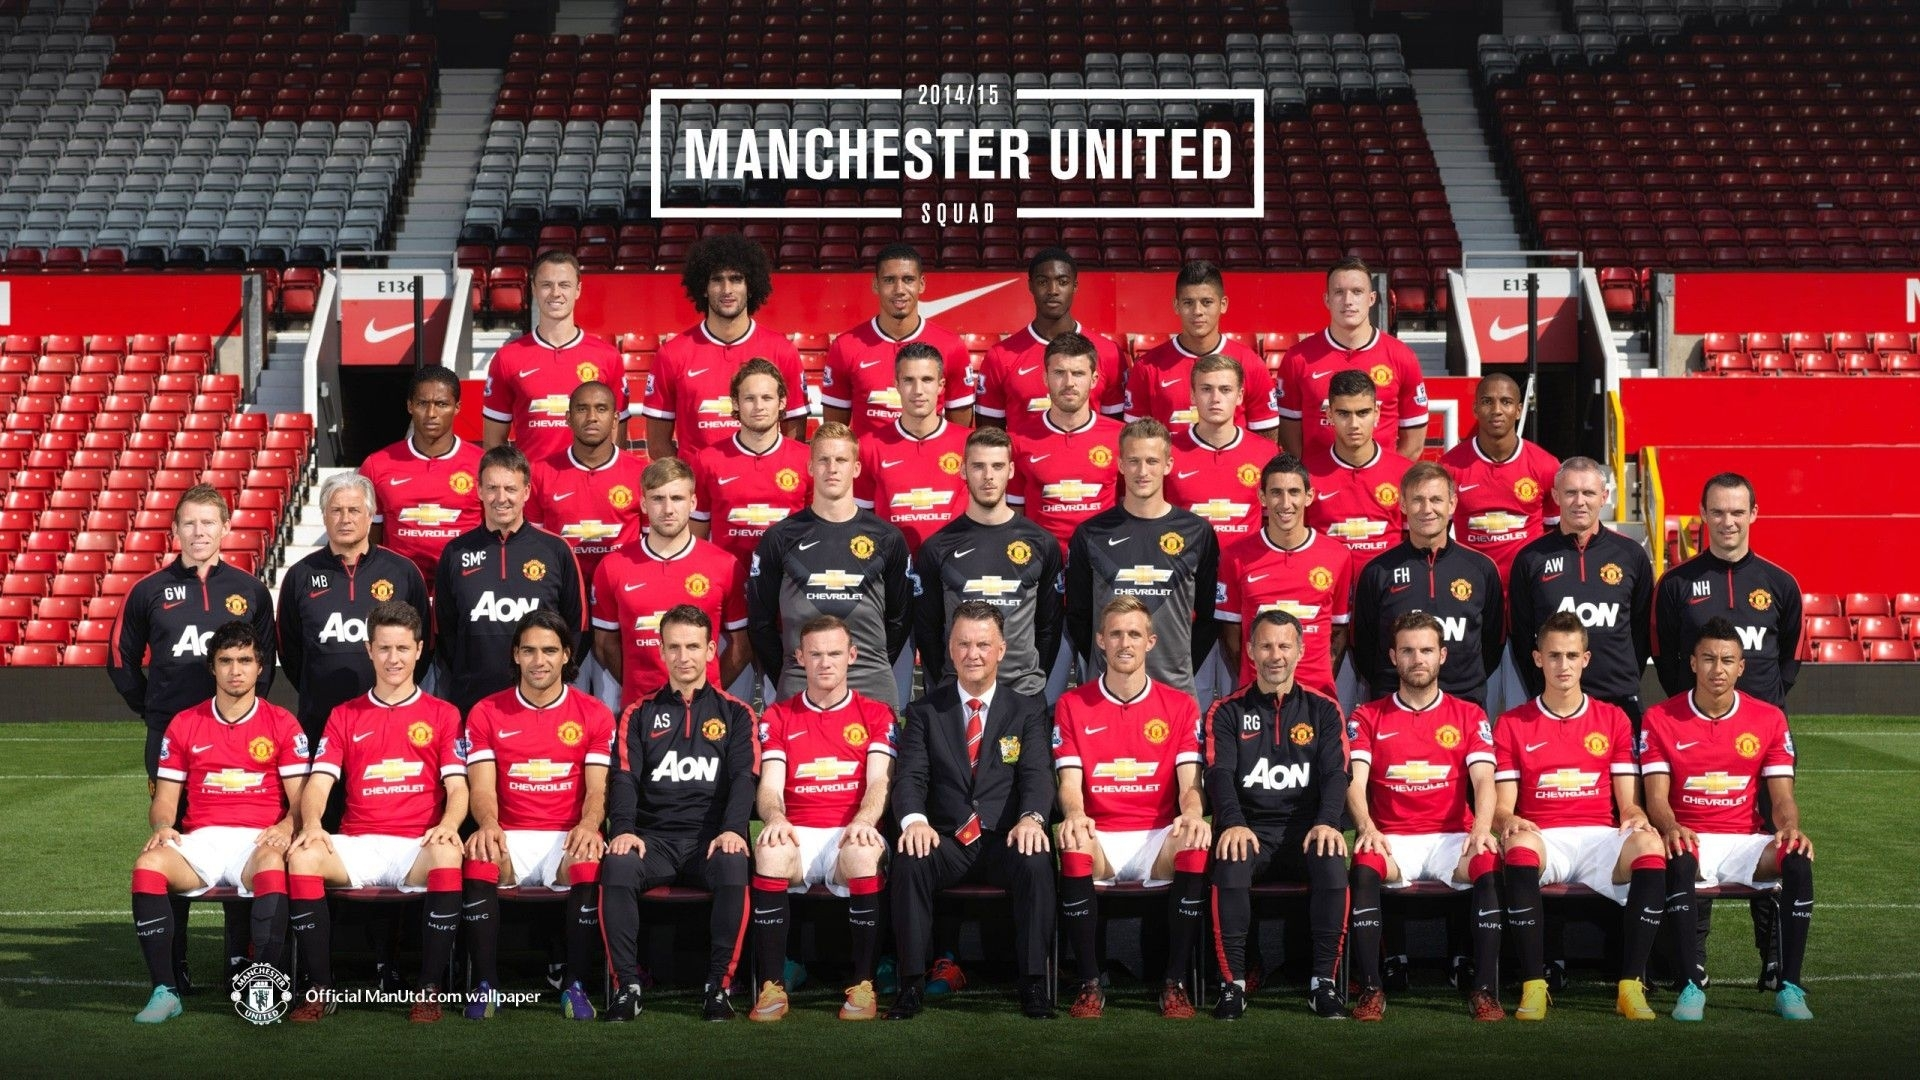 manchester united players 2014-2015 | wallpaper hd free download